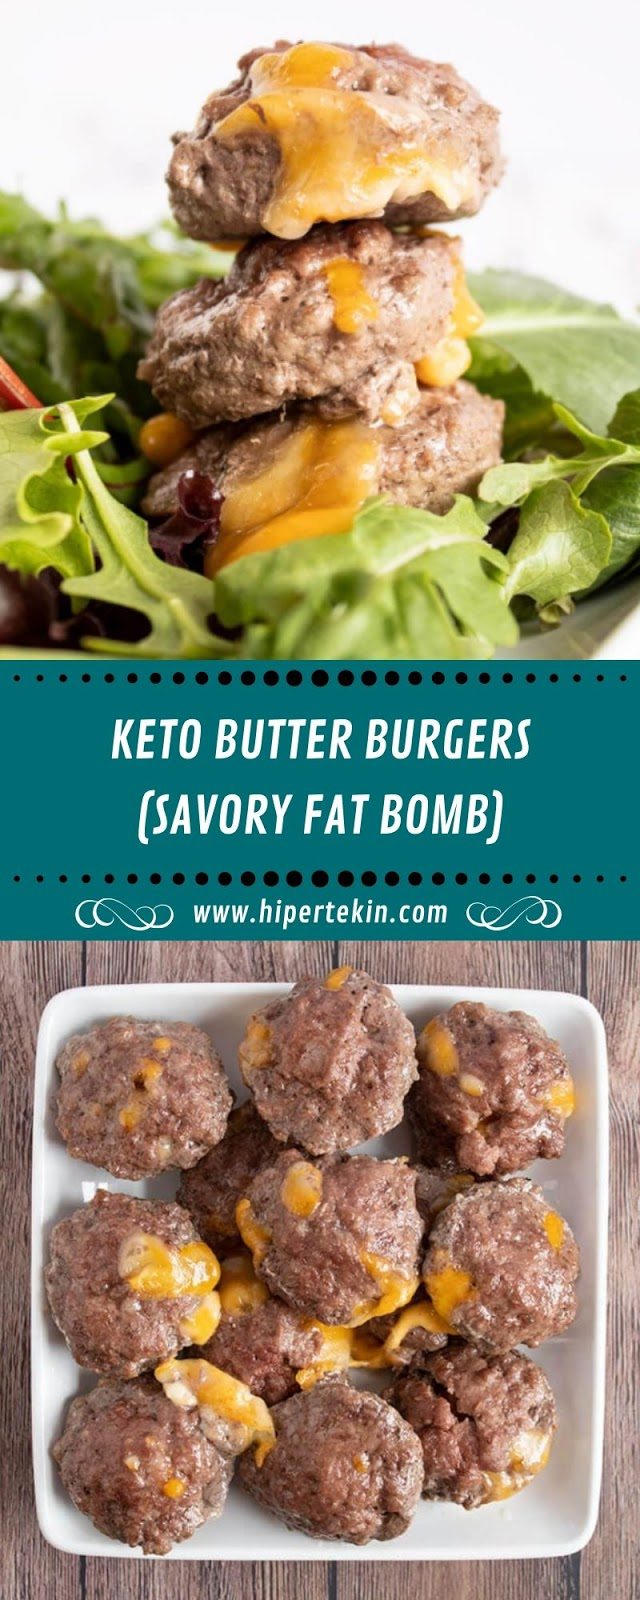 KETO BUTTER BURGERS (SAVORY FAT BOMB)